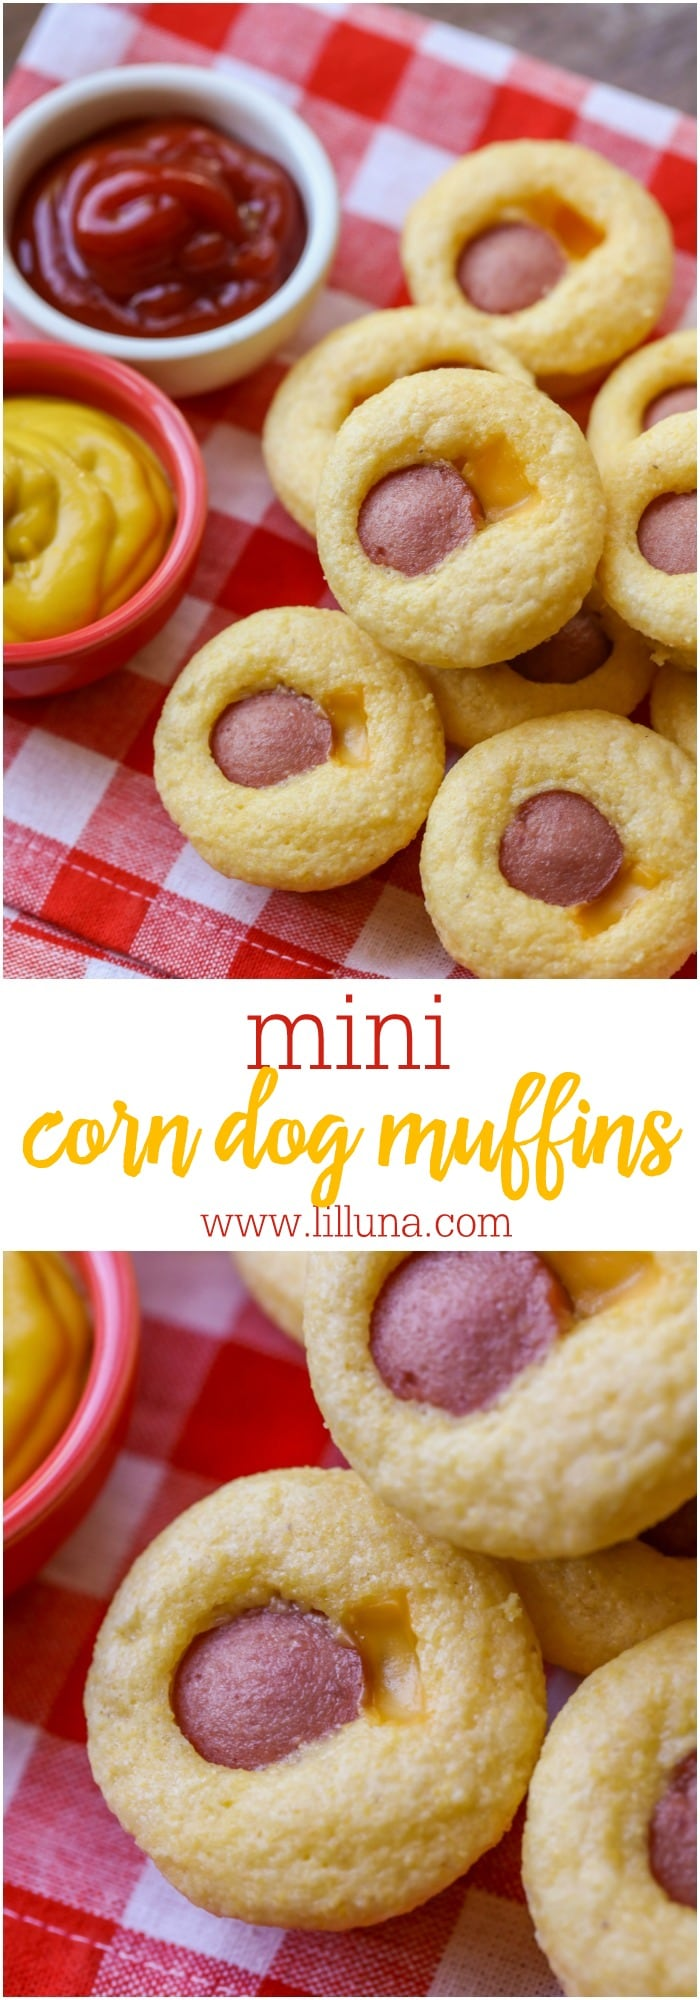 Mini Corn Dog Muffins - mini corn muffins stuffed with cheese and hot dogs. The kids loved this dinner recipe!